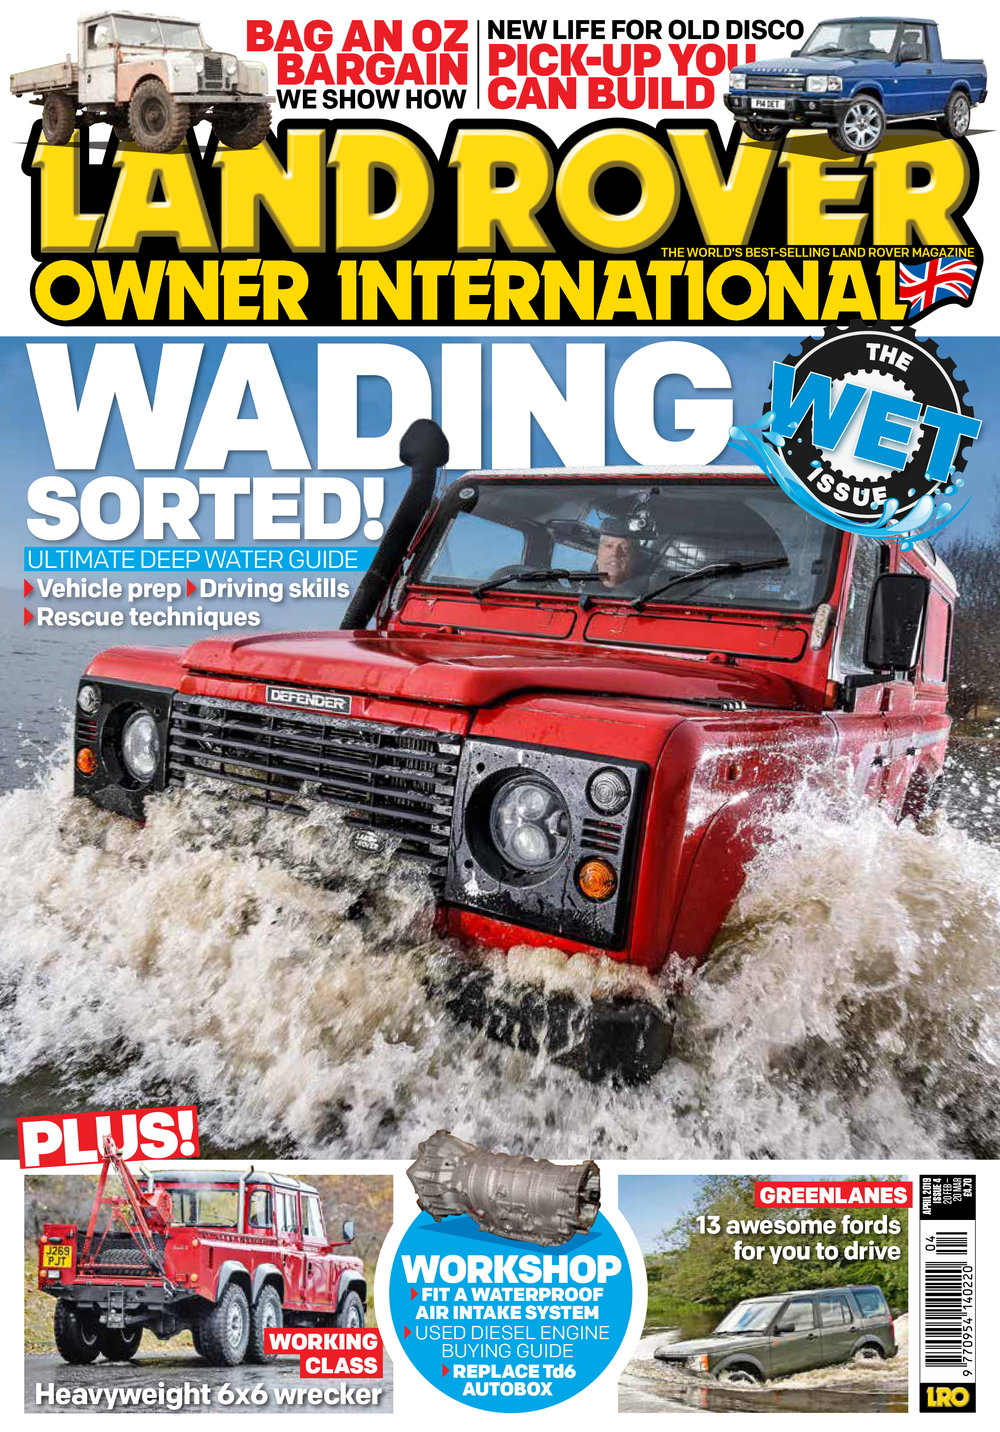 LRO Magazine April cover.jpg